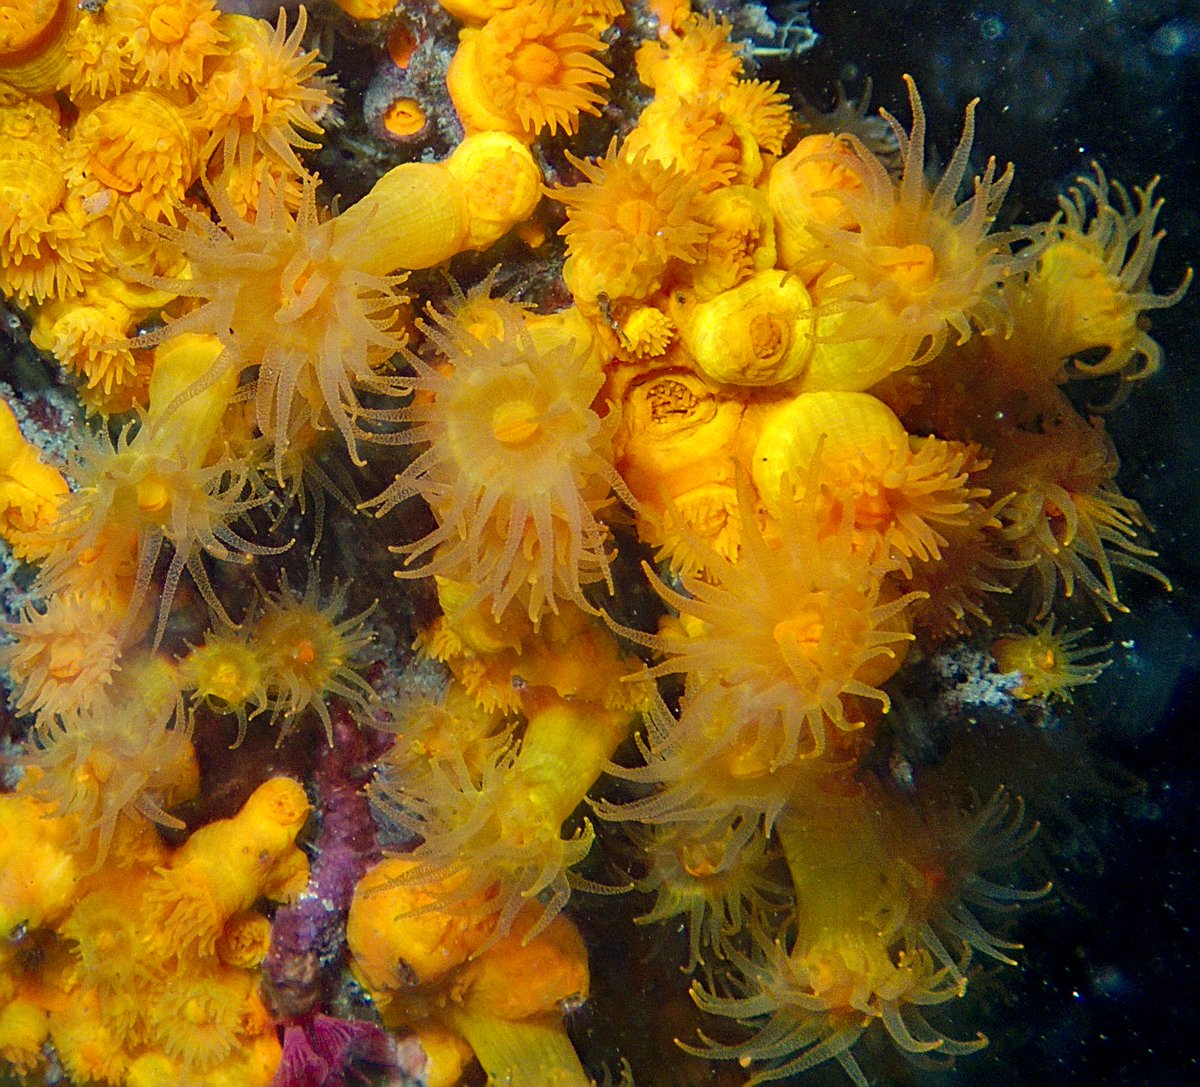 Astroides calycularis.  #photography #photo #photos #pics #picture #photographer #pictures #snapshot #art #beautiful #instagood #picoftheday #photooftheday #composition #focus #capture #moment #photoshoot #photodaily #photogram #buceo #diving #scuba #scubadiving #submarinismo